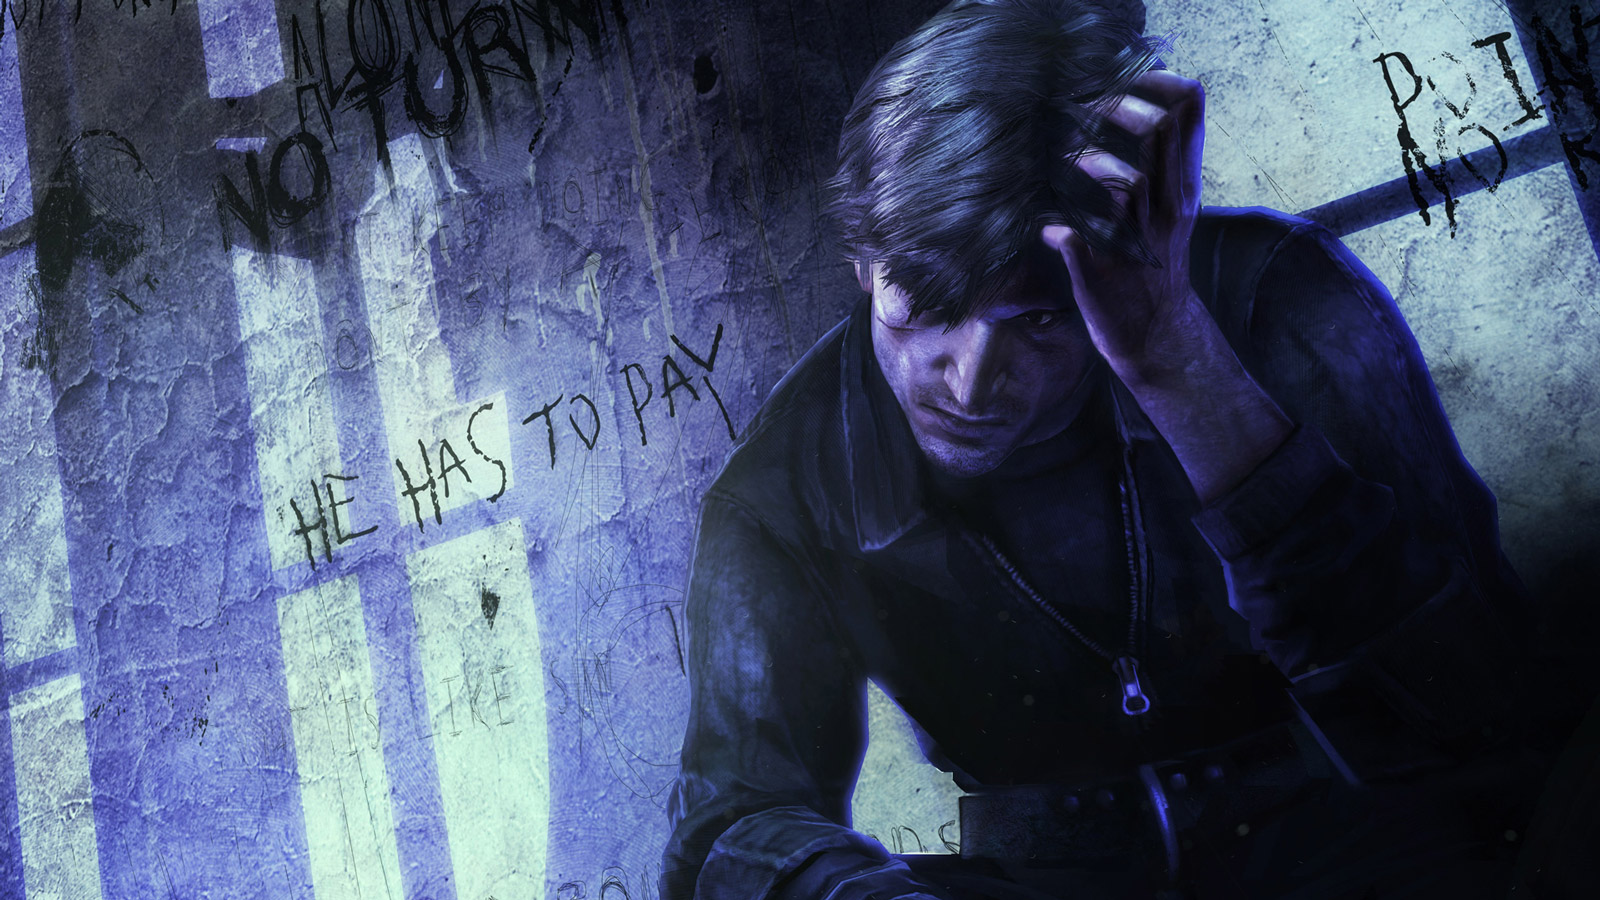 Silent Hill: Downpour Wallpaper in 1600x900